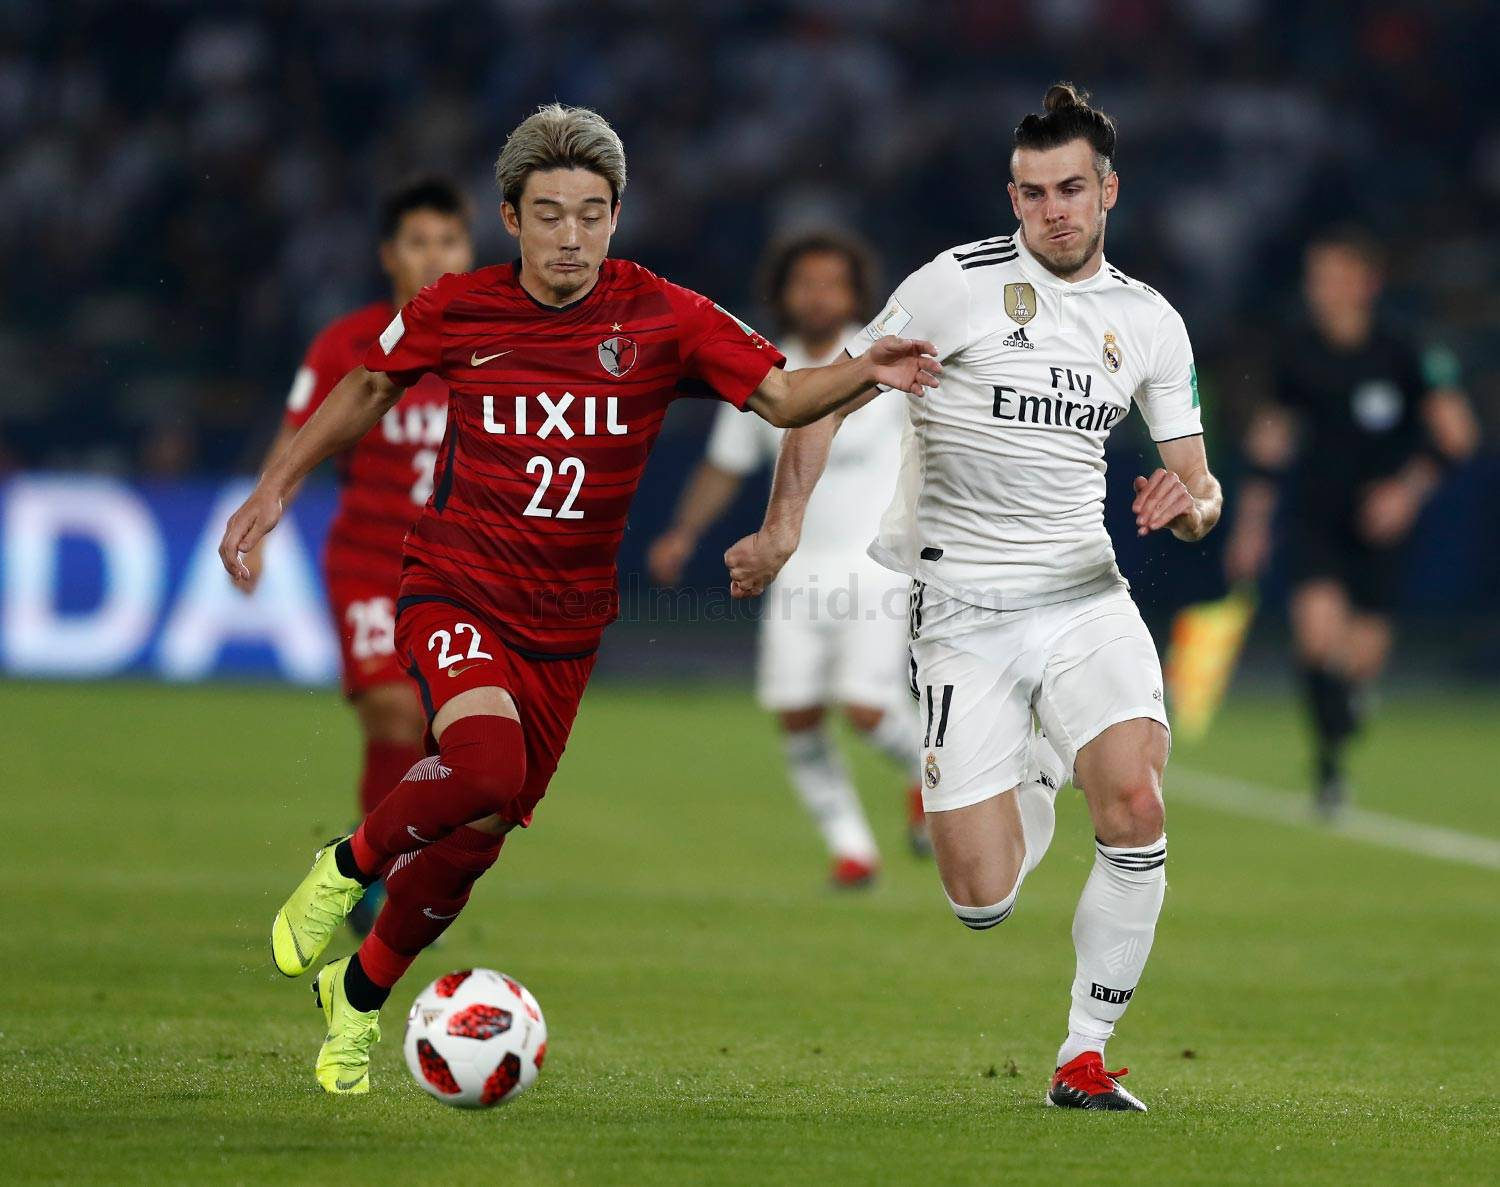 Real Madrid - Kashima Antlers - Real Madrid - 19-12-2018